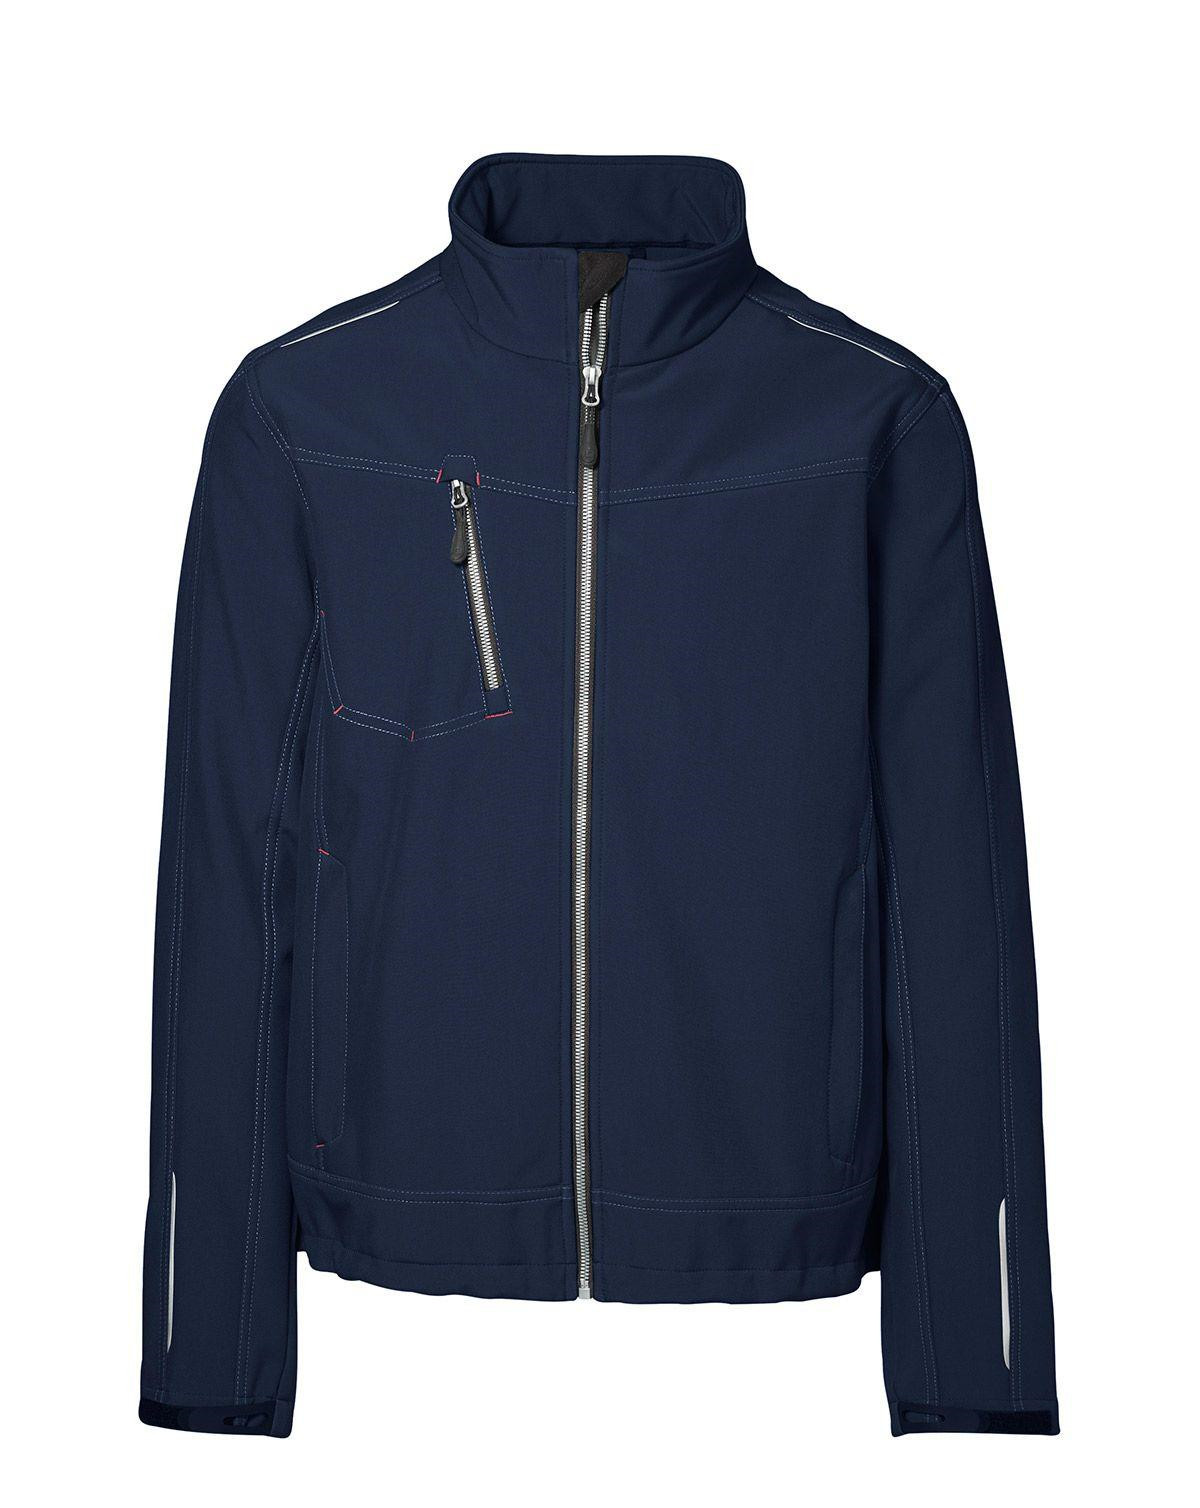 Image of   ID Softshell Jakke (Navy, 2XL)